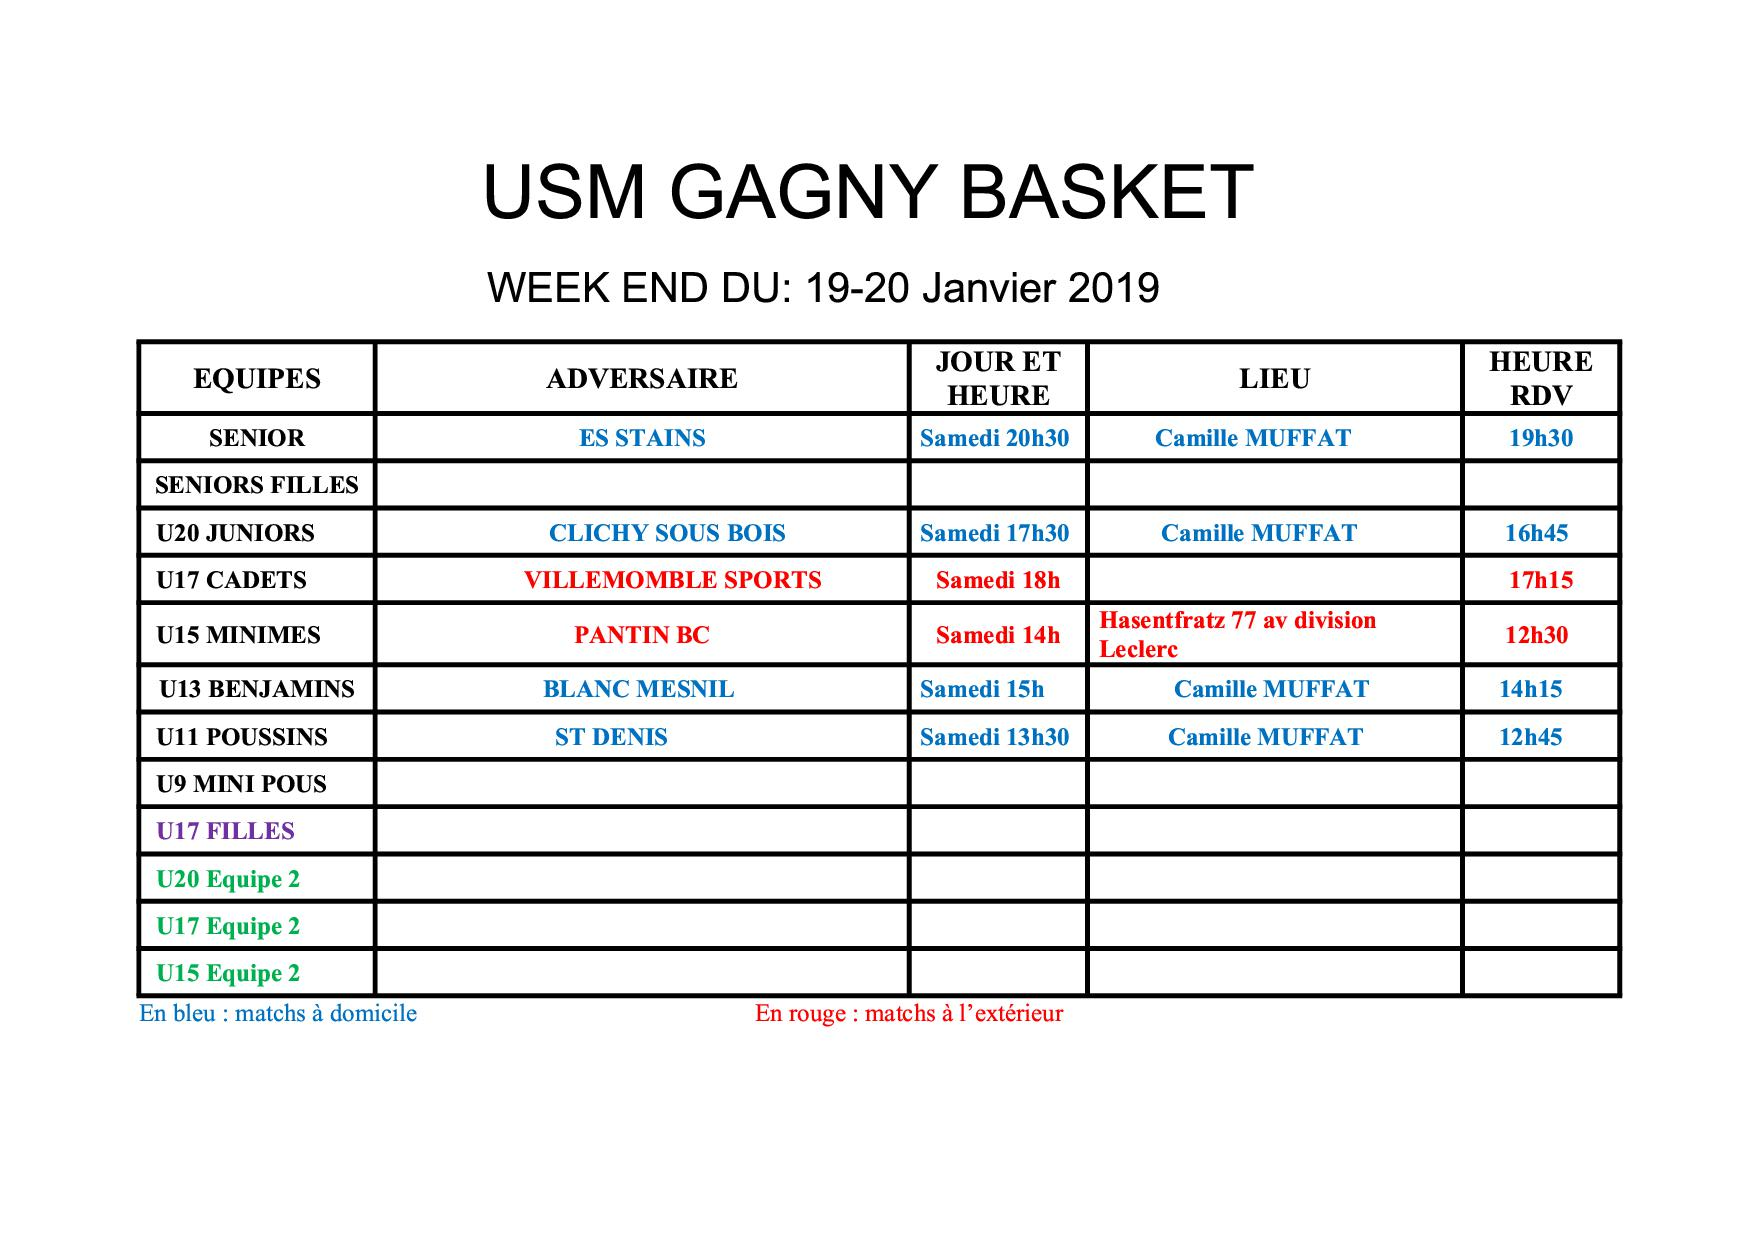 Usmg gagny planning week end 19 20 janvier 2019